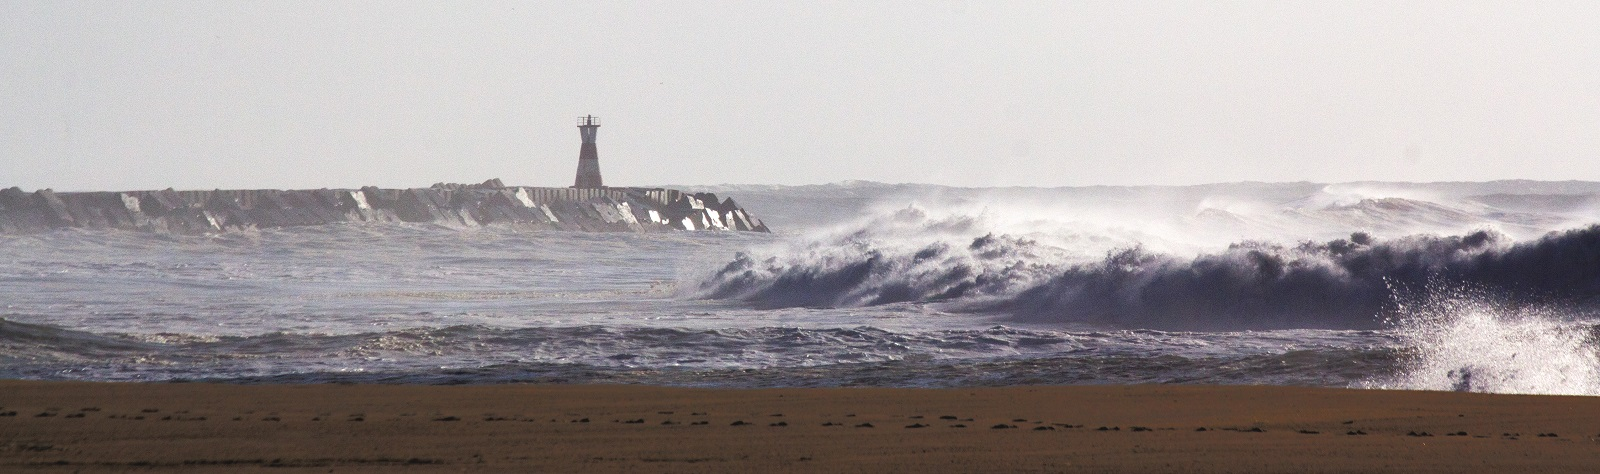 waves crashing on beach, pier with lighthouse at end, Figueira da Foz, Portugal